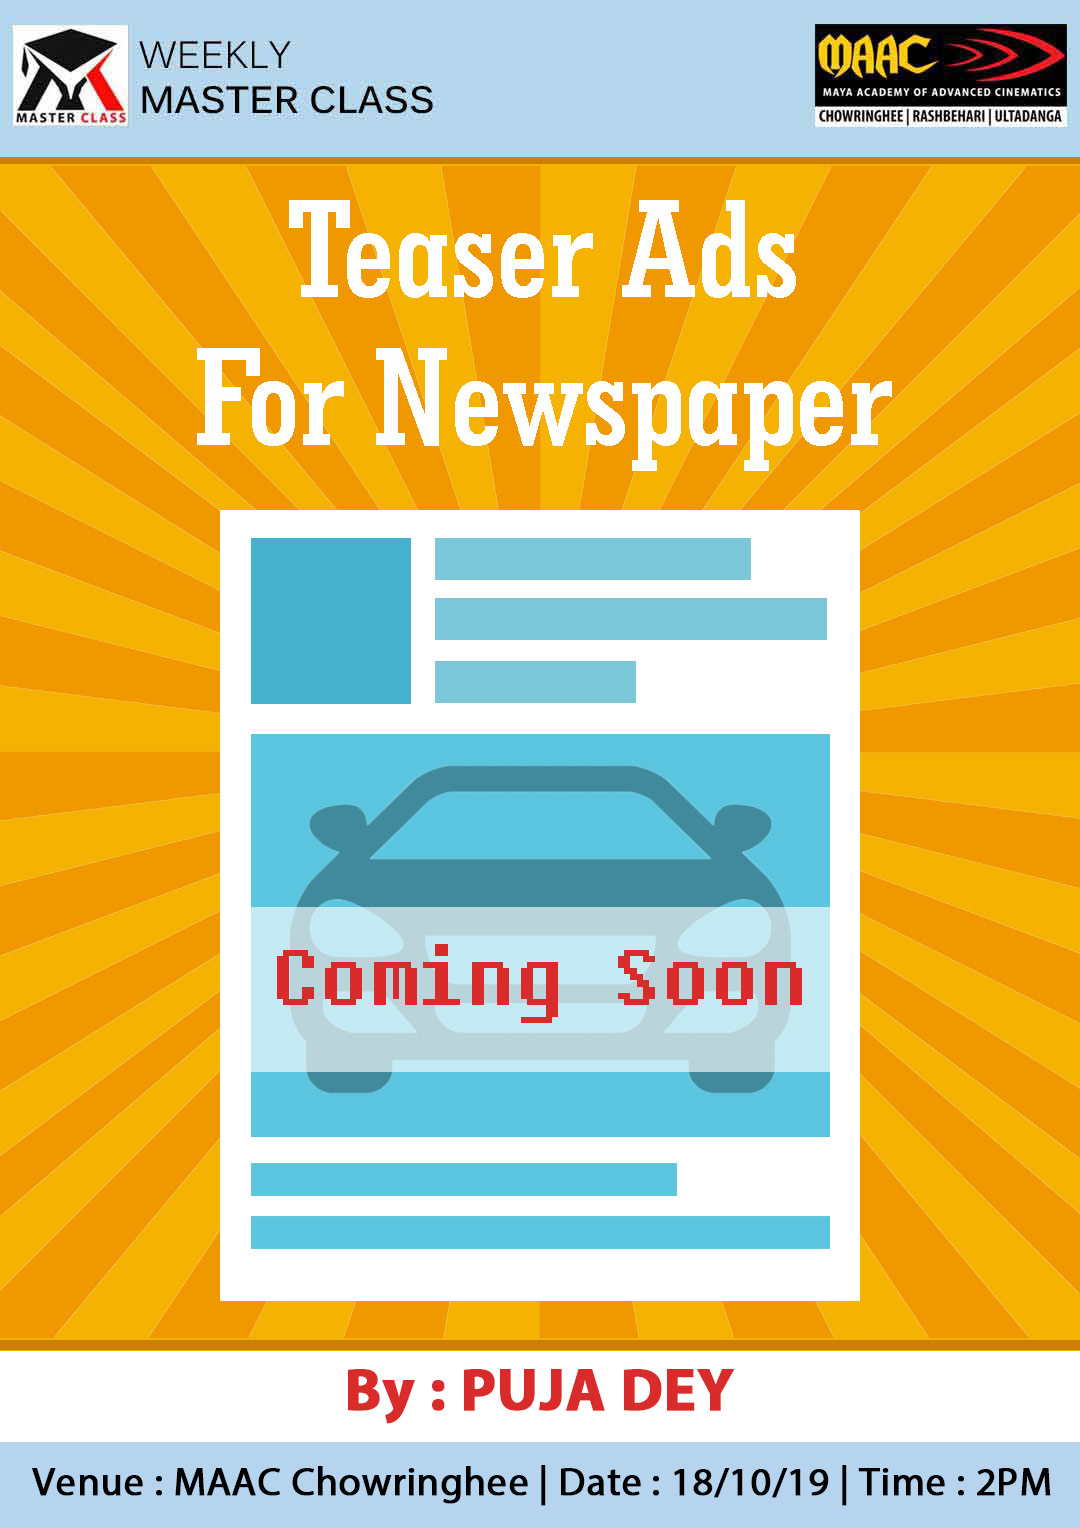 Weekly Master Class on Teaser Ads for Newspaper